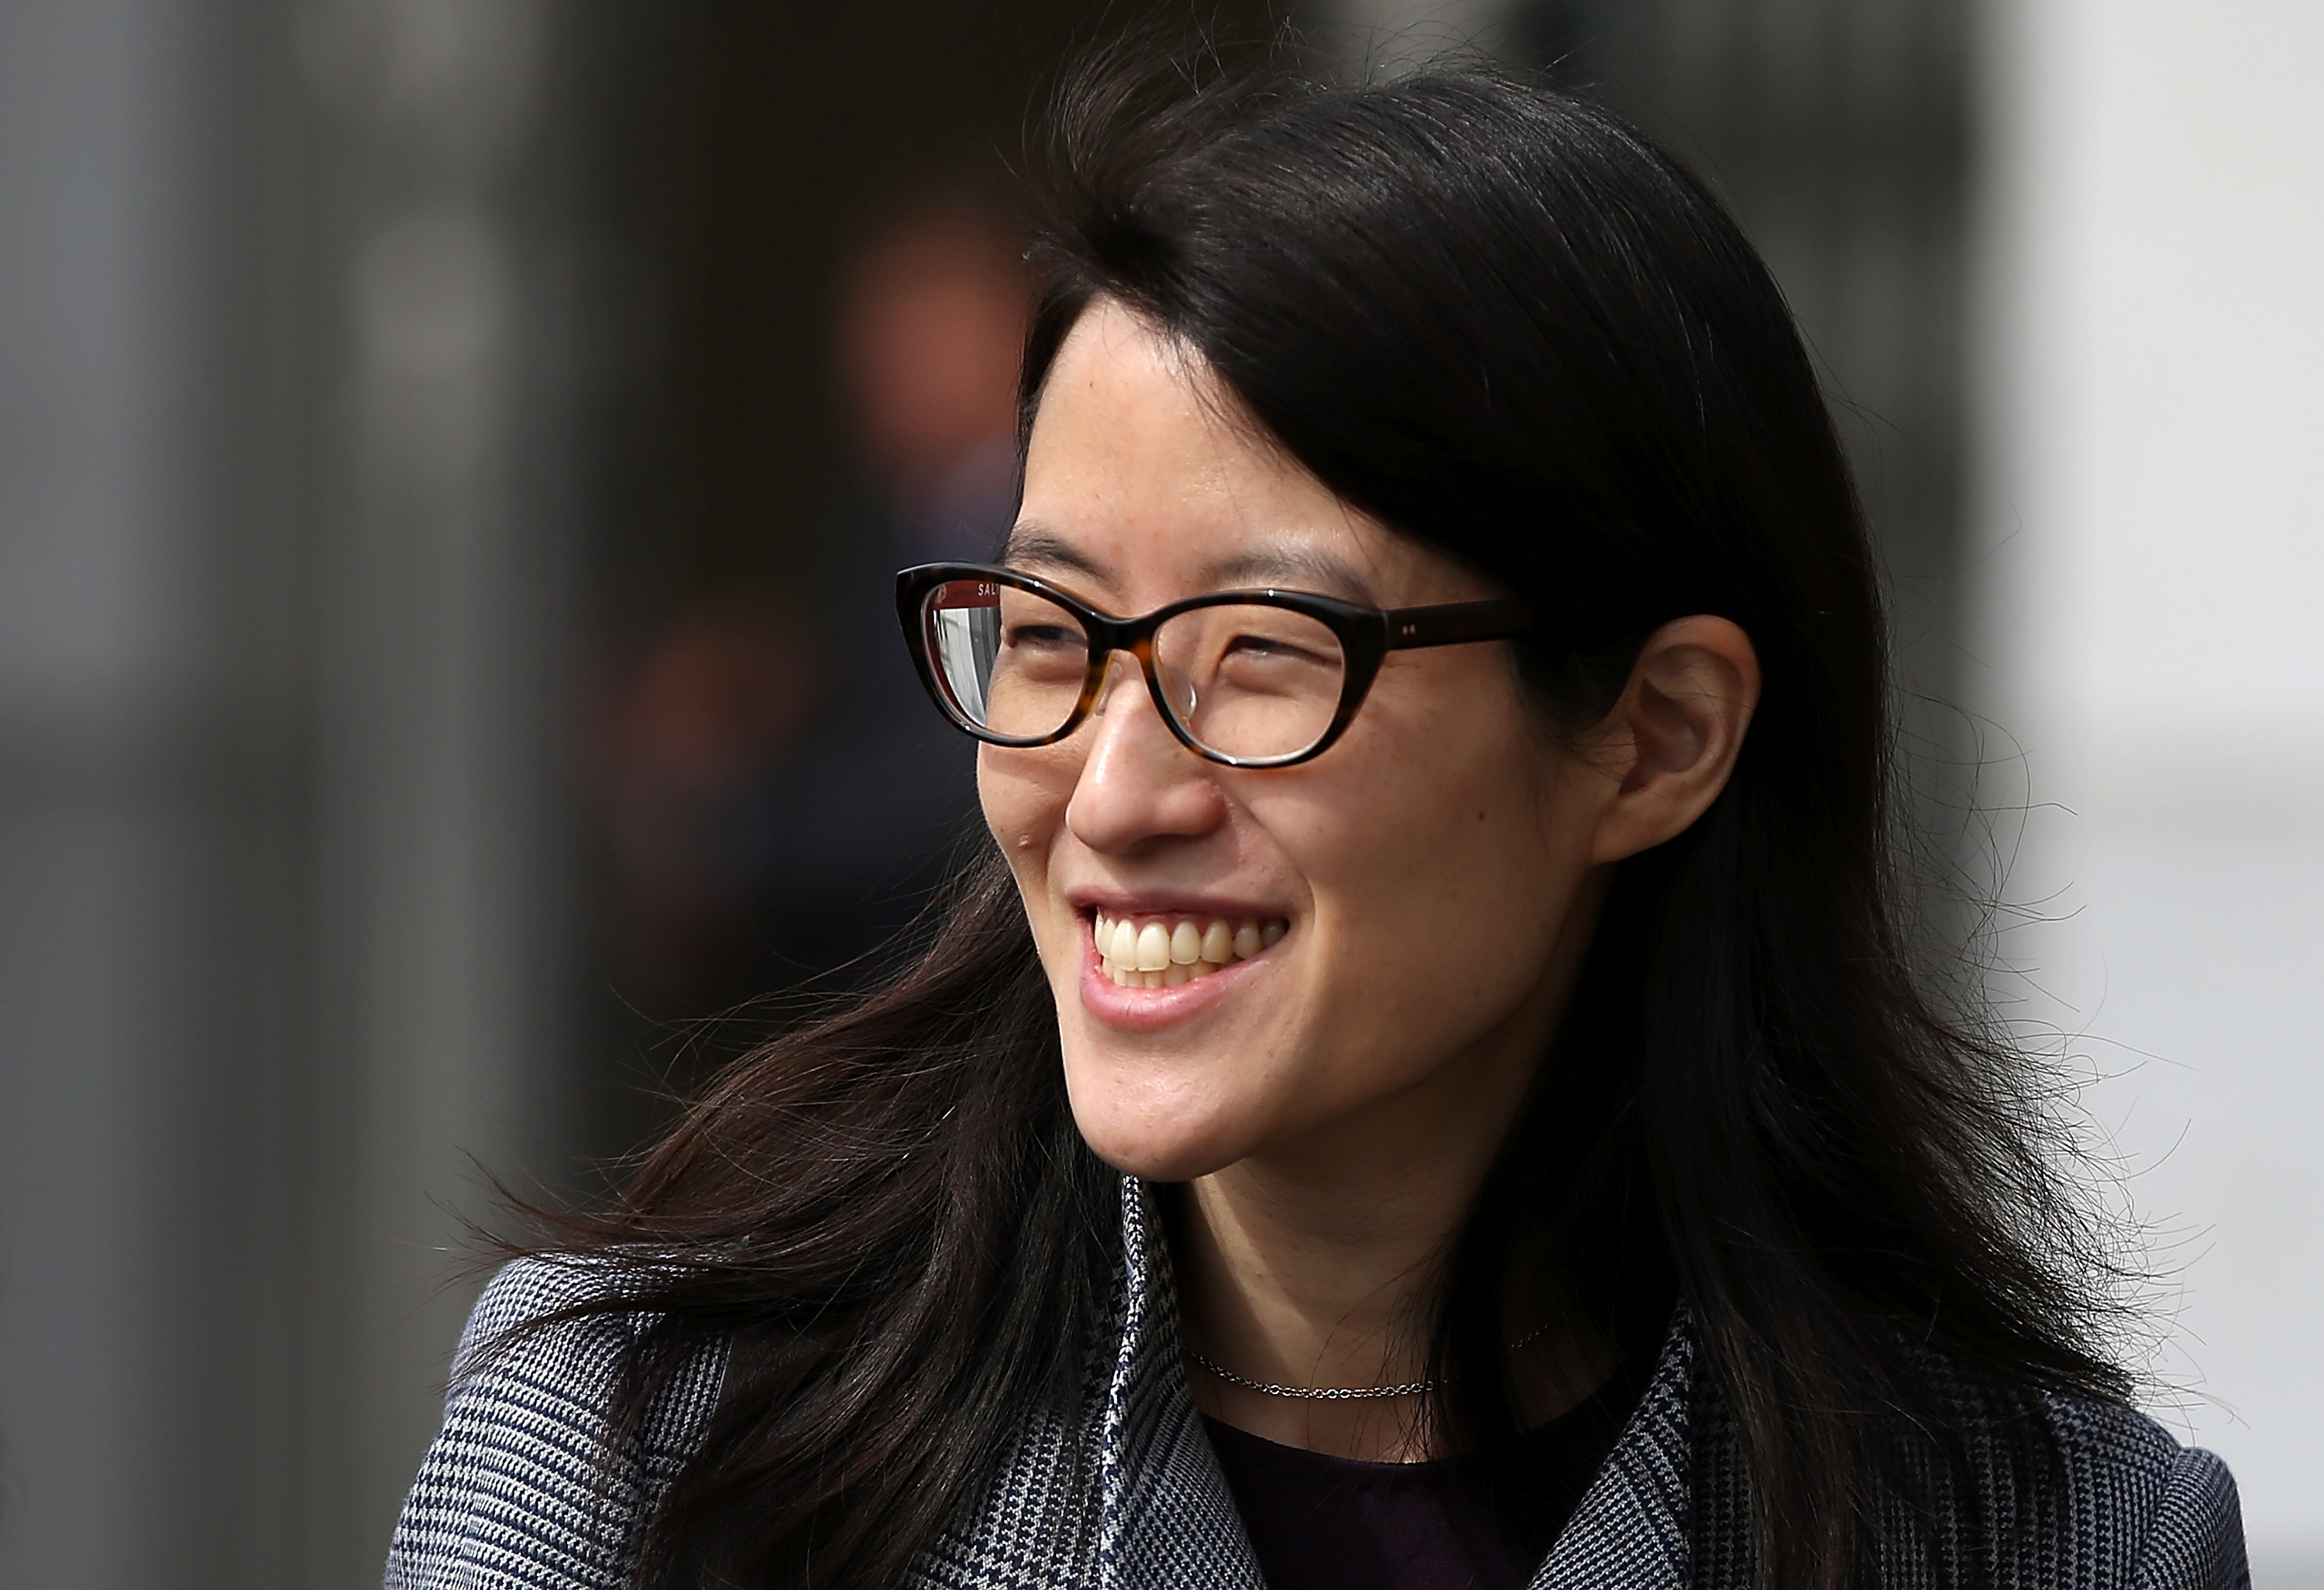 Reddit users revolt, calling for CEO Ellen Pao's removal - CBS News